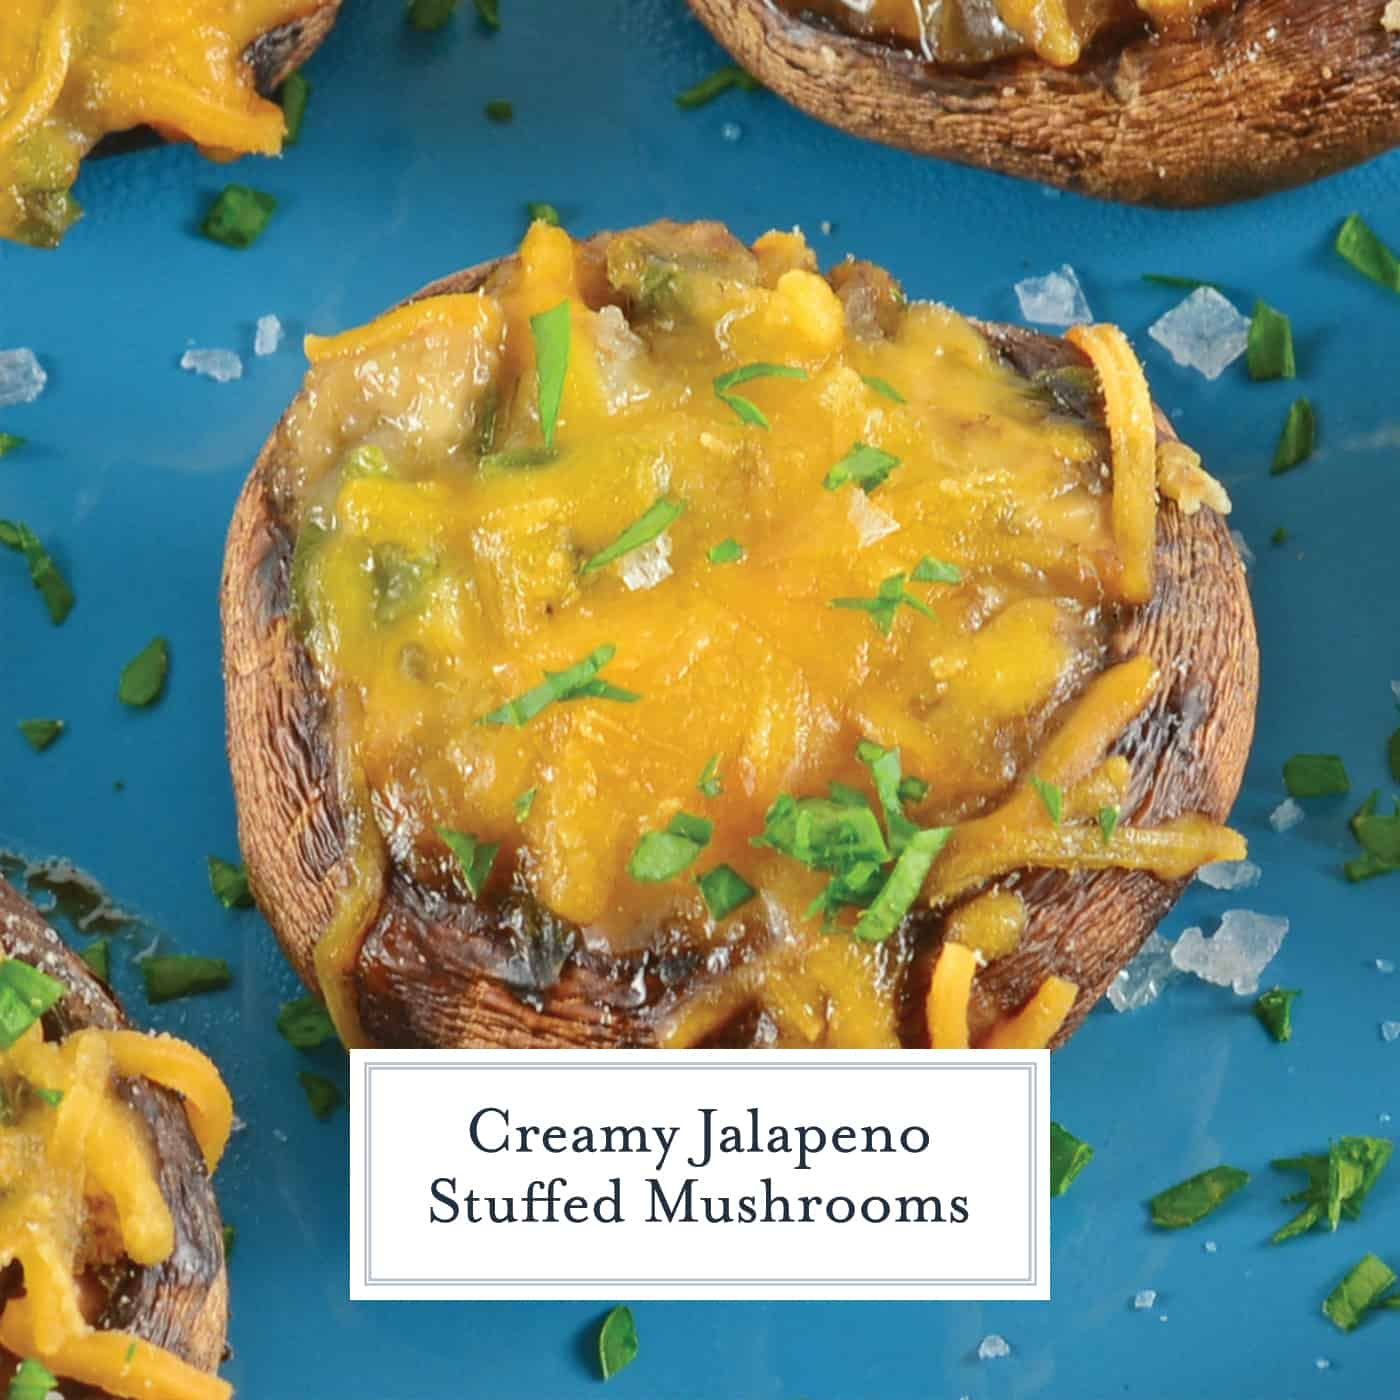 Creamy Jalapeno Stuffed Mushrooms are an easy jalapeno popper make ahead recipe using cream cheese and fresh jalapenos. The perfect party appetizer! #stuffedmushrooms #jalapenopopperrecipes #makeaheadappetizers www.savoryexperiments.com